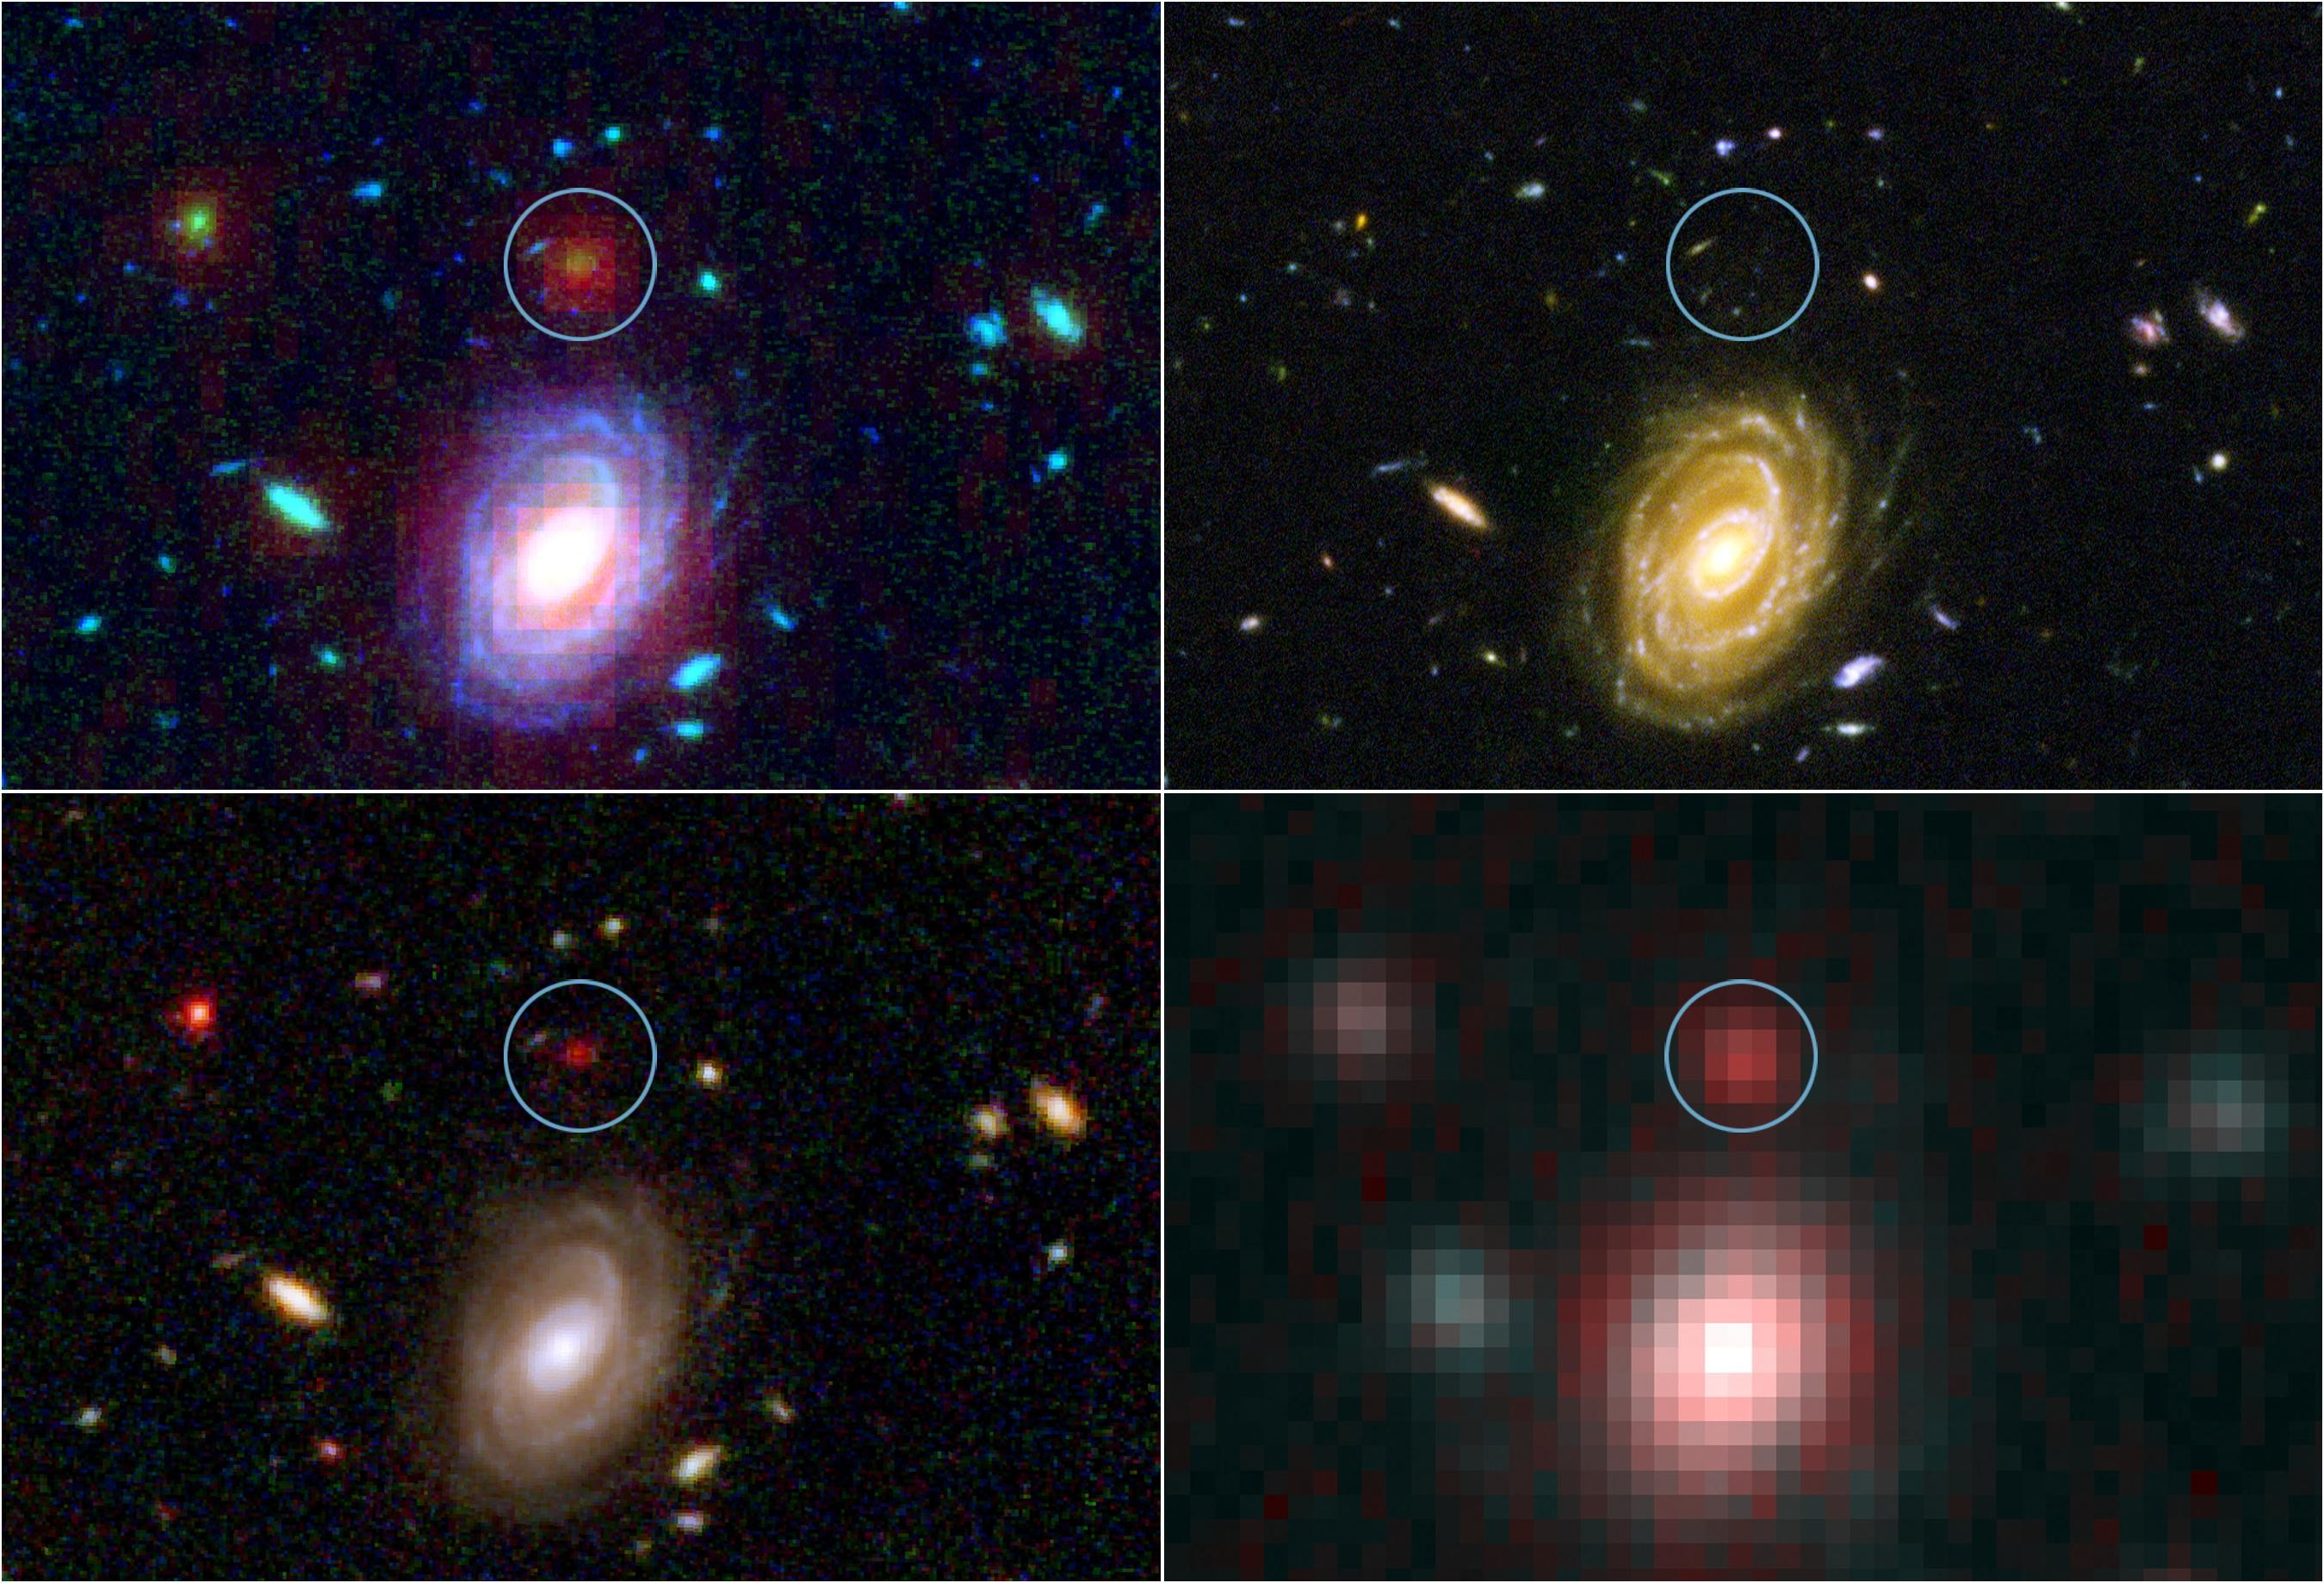 2699x1838 This image demonstrates how data from two of NASA's Great Observatories,  the Spitzer and Hubble